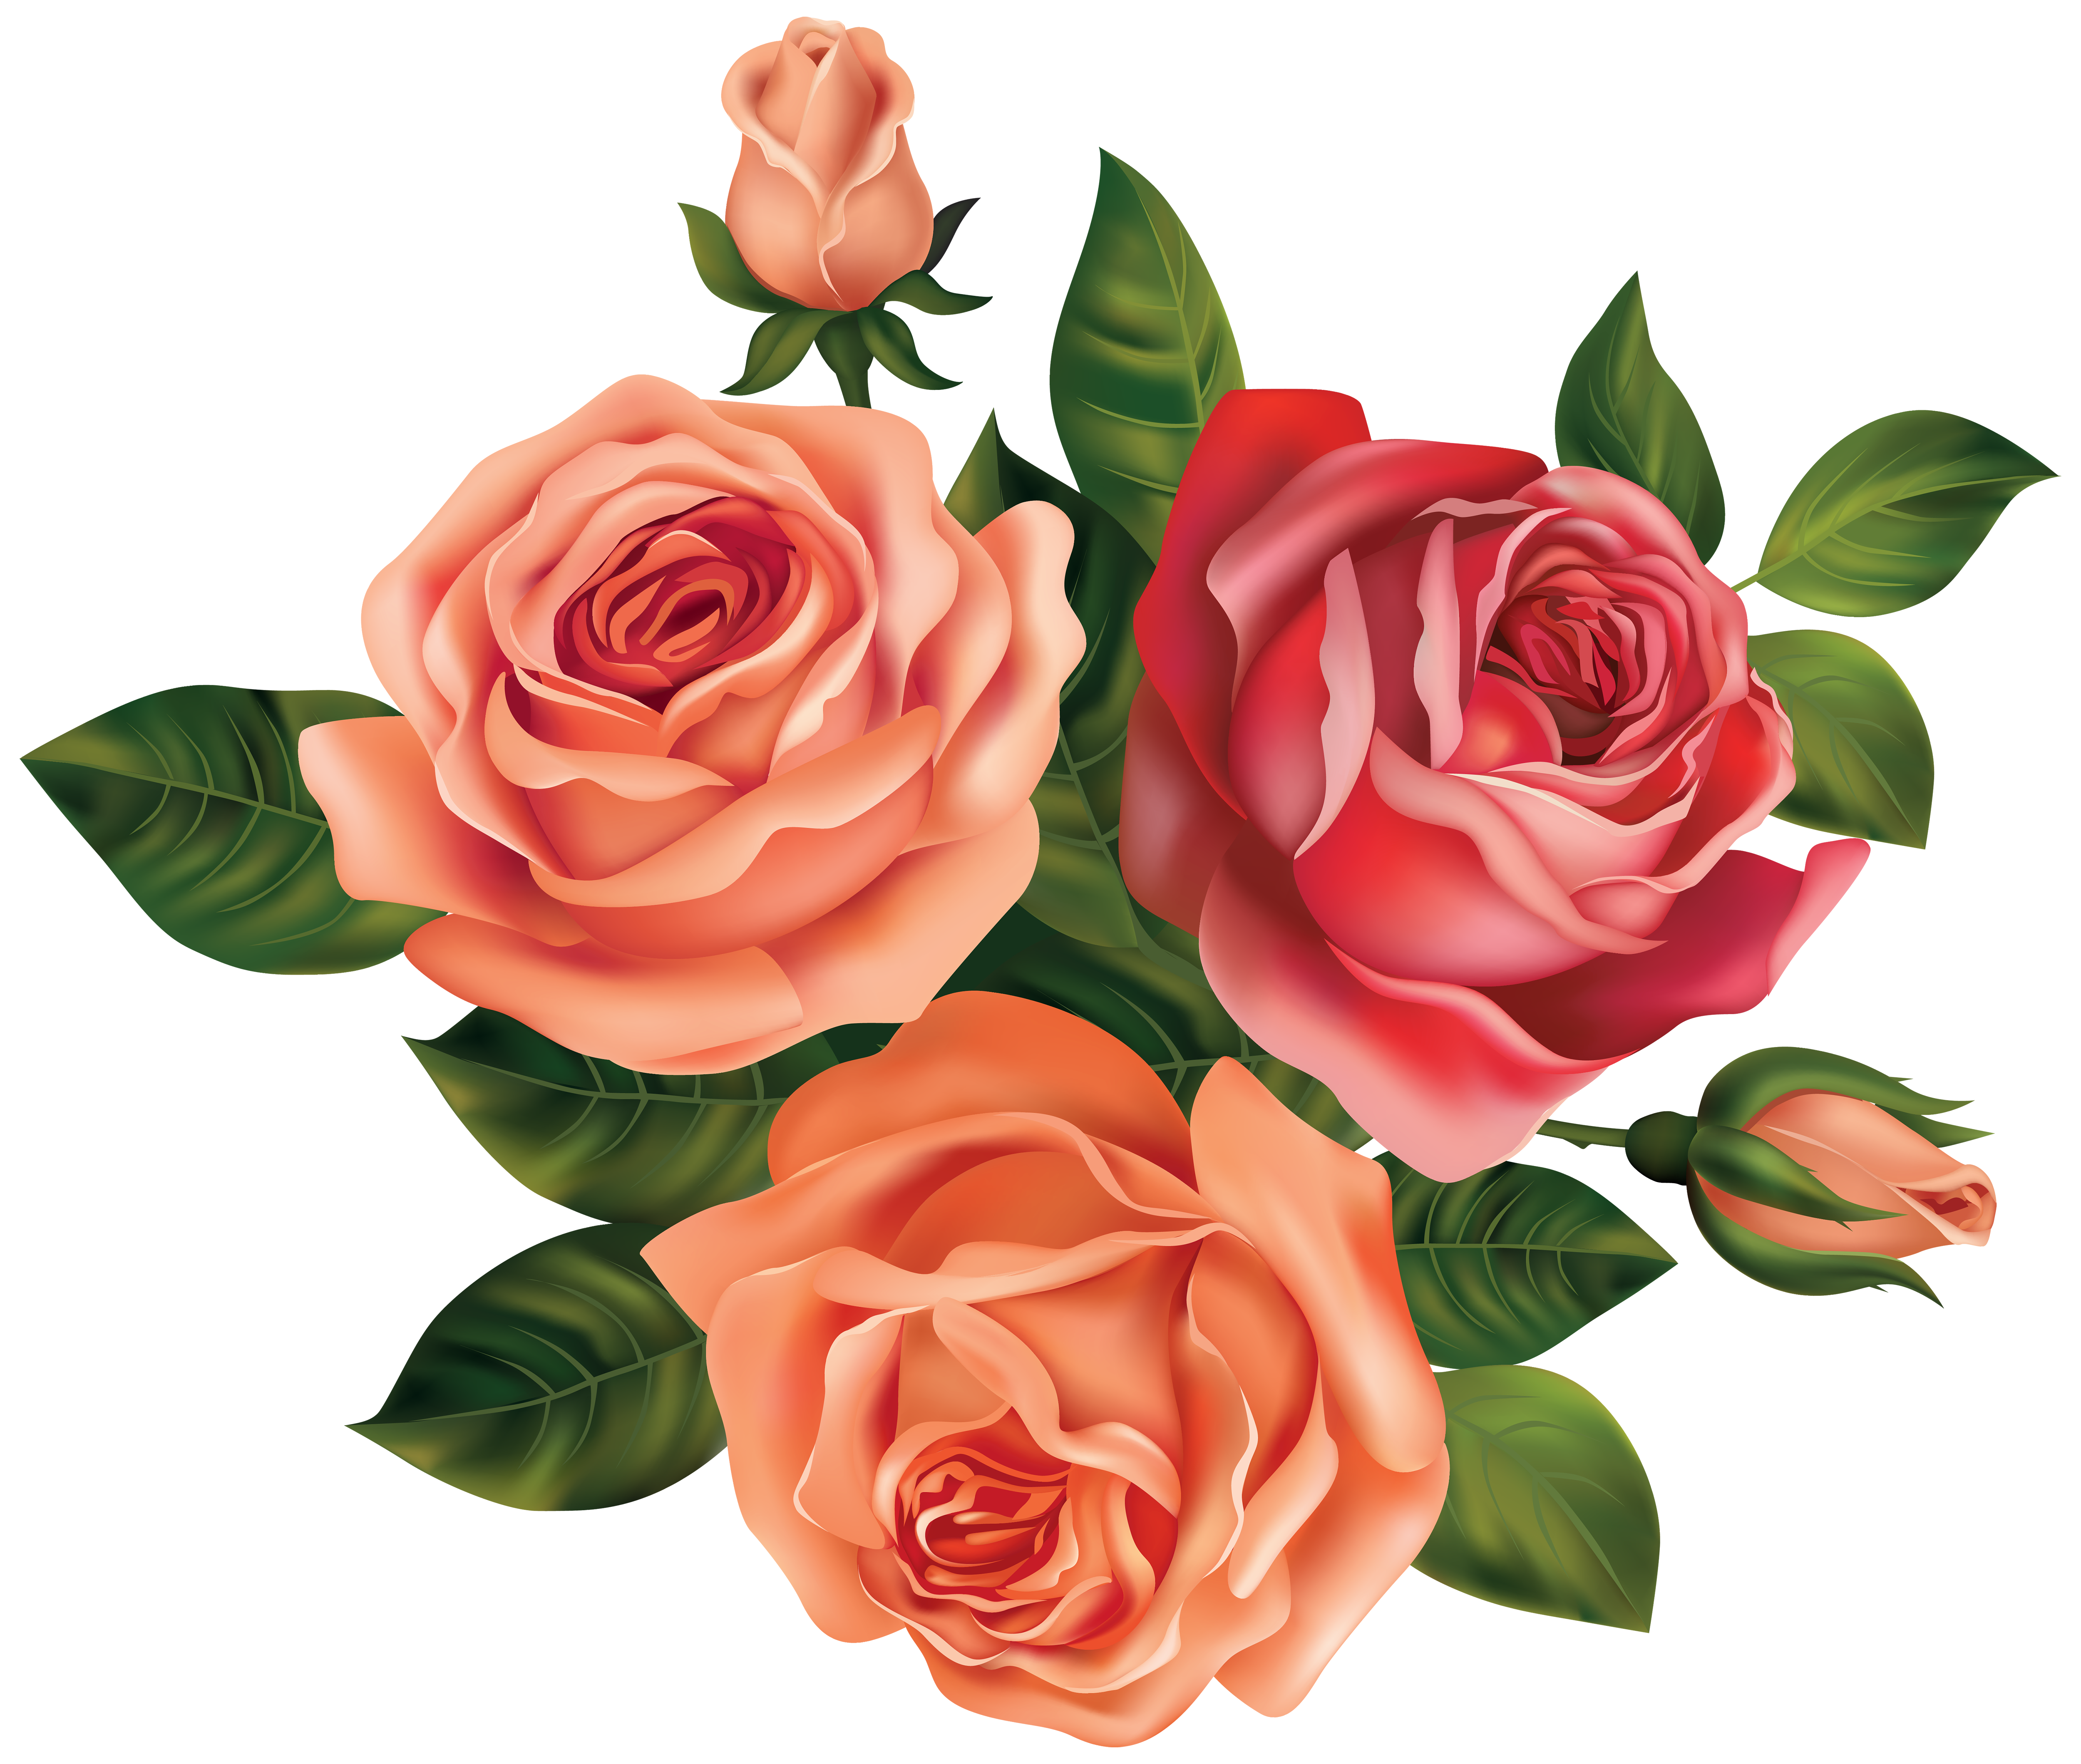 Roses clipart images image royalty free Beautiful Roses Clipart Image | Gallery Yopriceville - High ... image royalty free